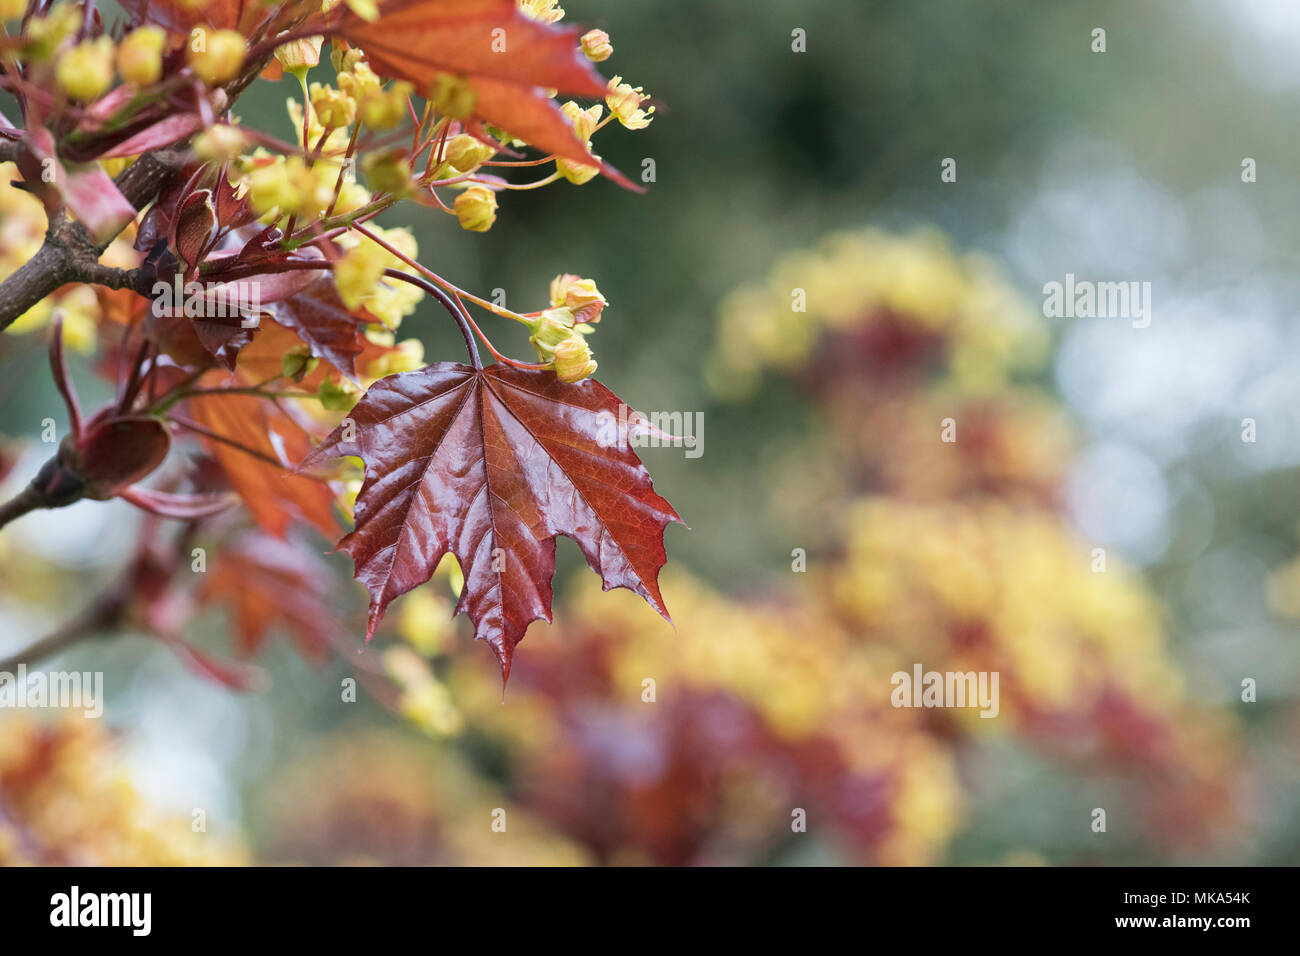 Acer Platanoides 'Goldsworth purple'. Norway Maple tree flowering in spring Stock Photo